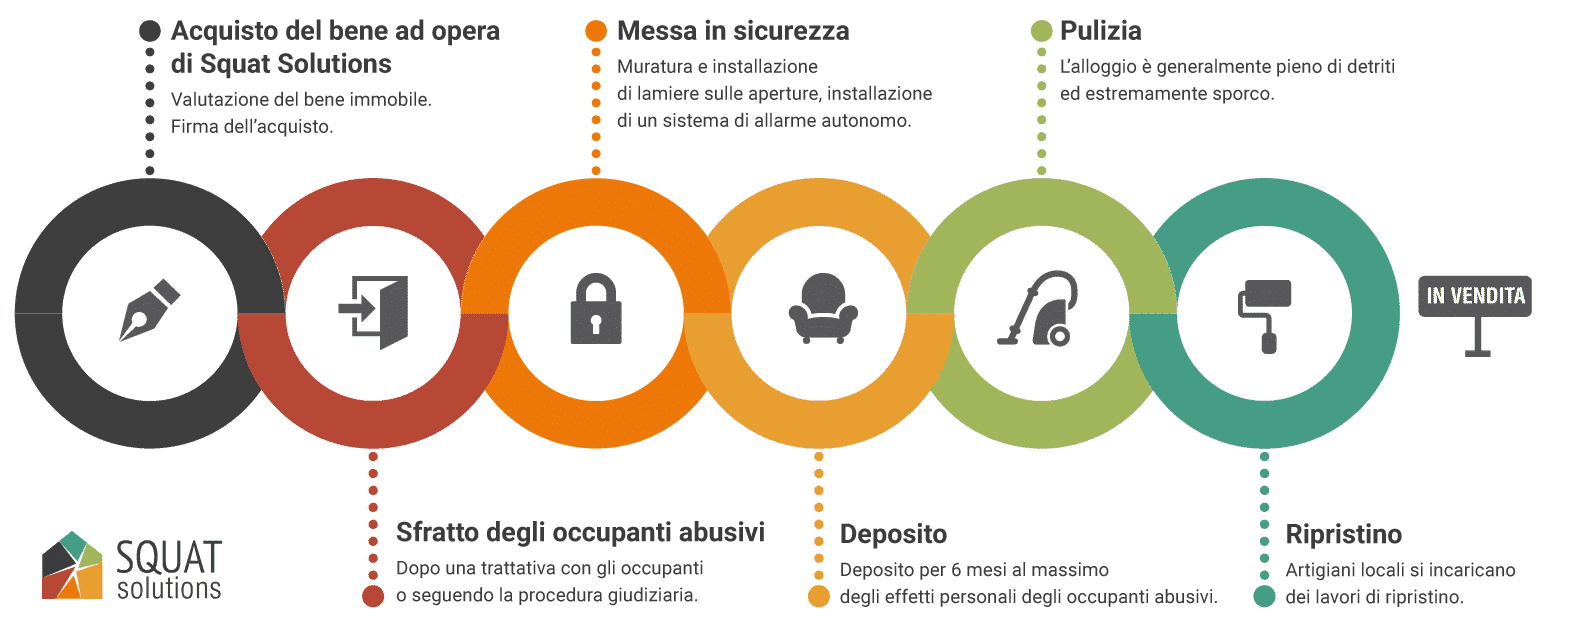 INFOGRAPHIE-rachatsquat-it Riscatto dei beni occupati abusivamente